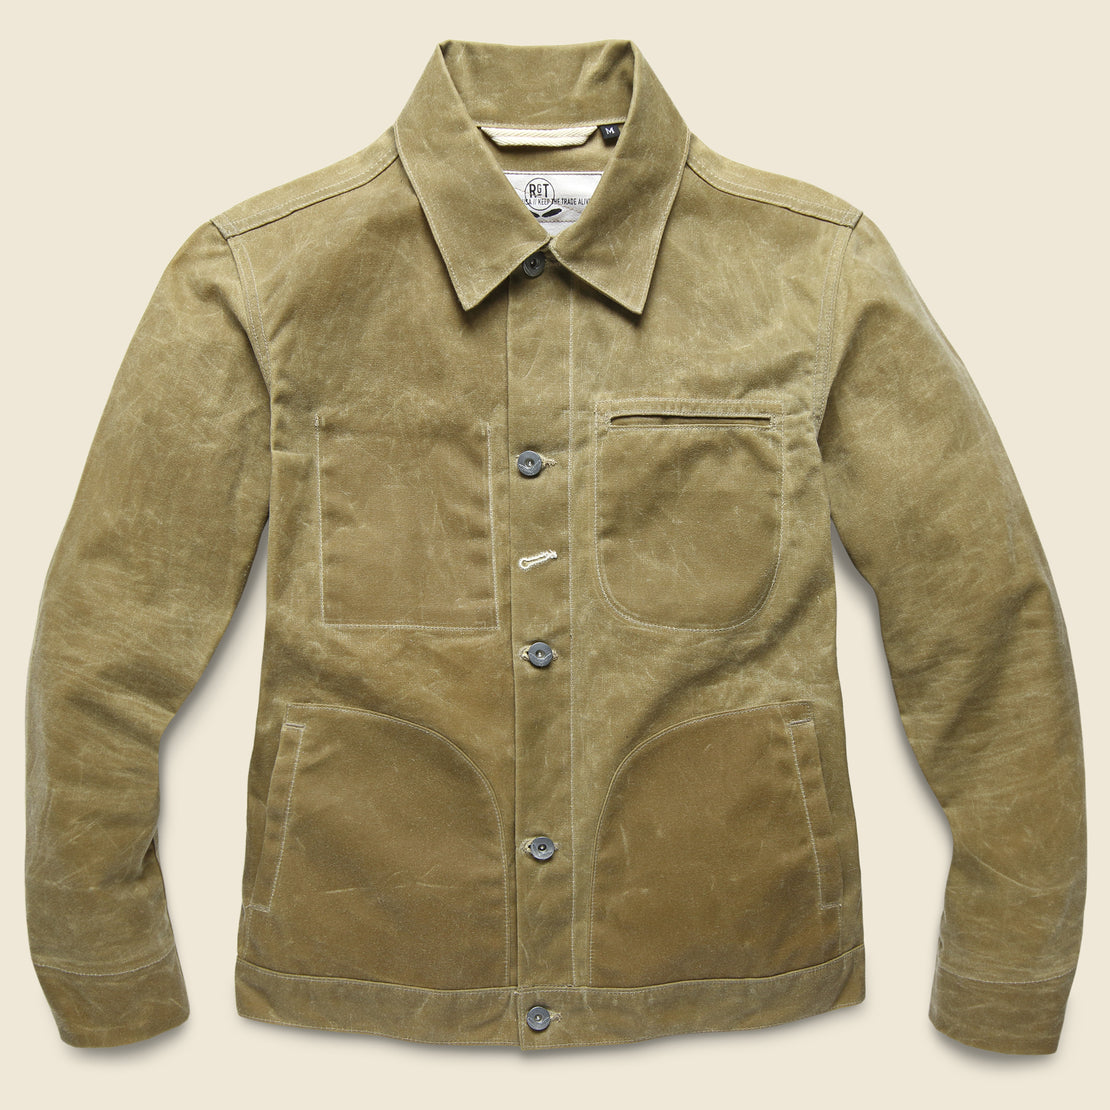 Rogue Territory Waxed Ridgeline Supply Jacket - Tan